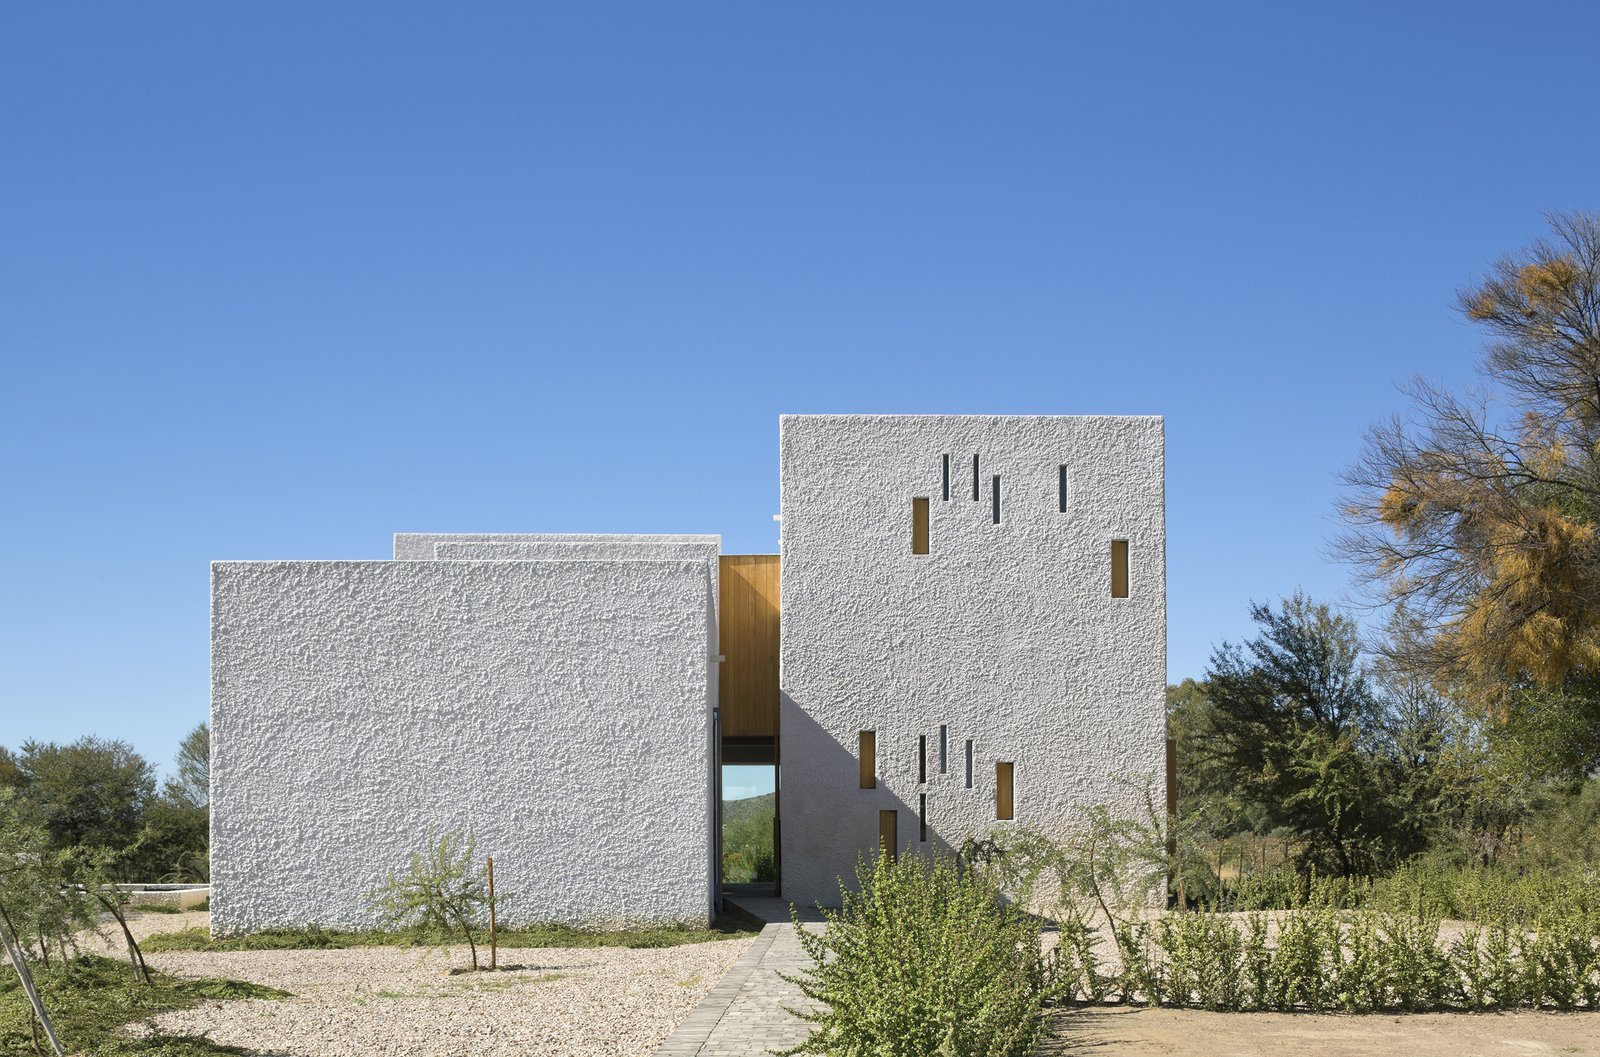 Exterior, Stucco Siding Material, and House Building Type  Photo 1 of 7 in A Minimalist Retreat at the Edge of South Africa's Karoo Desert